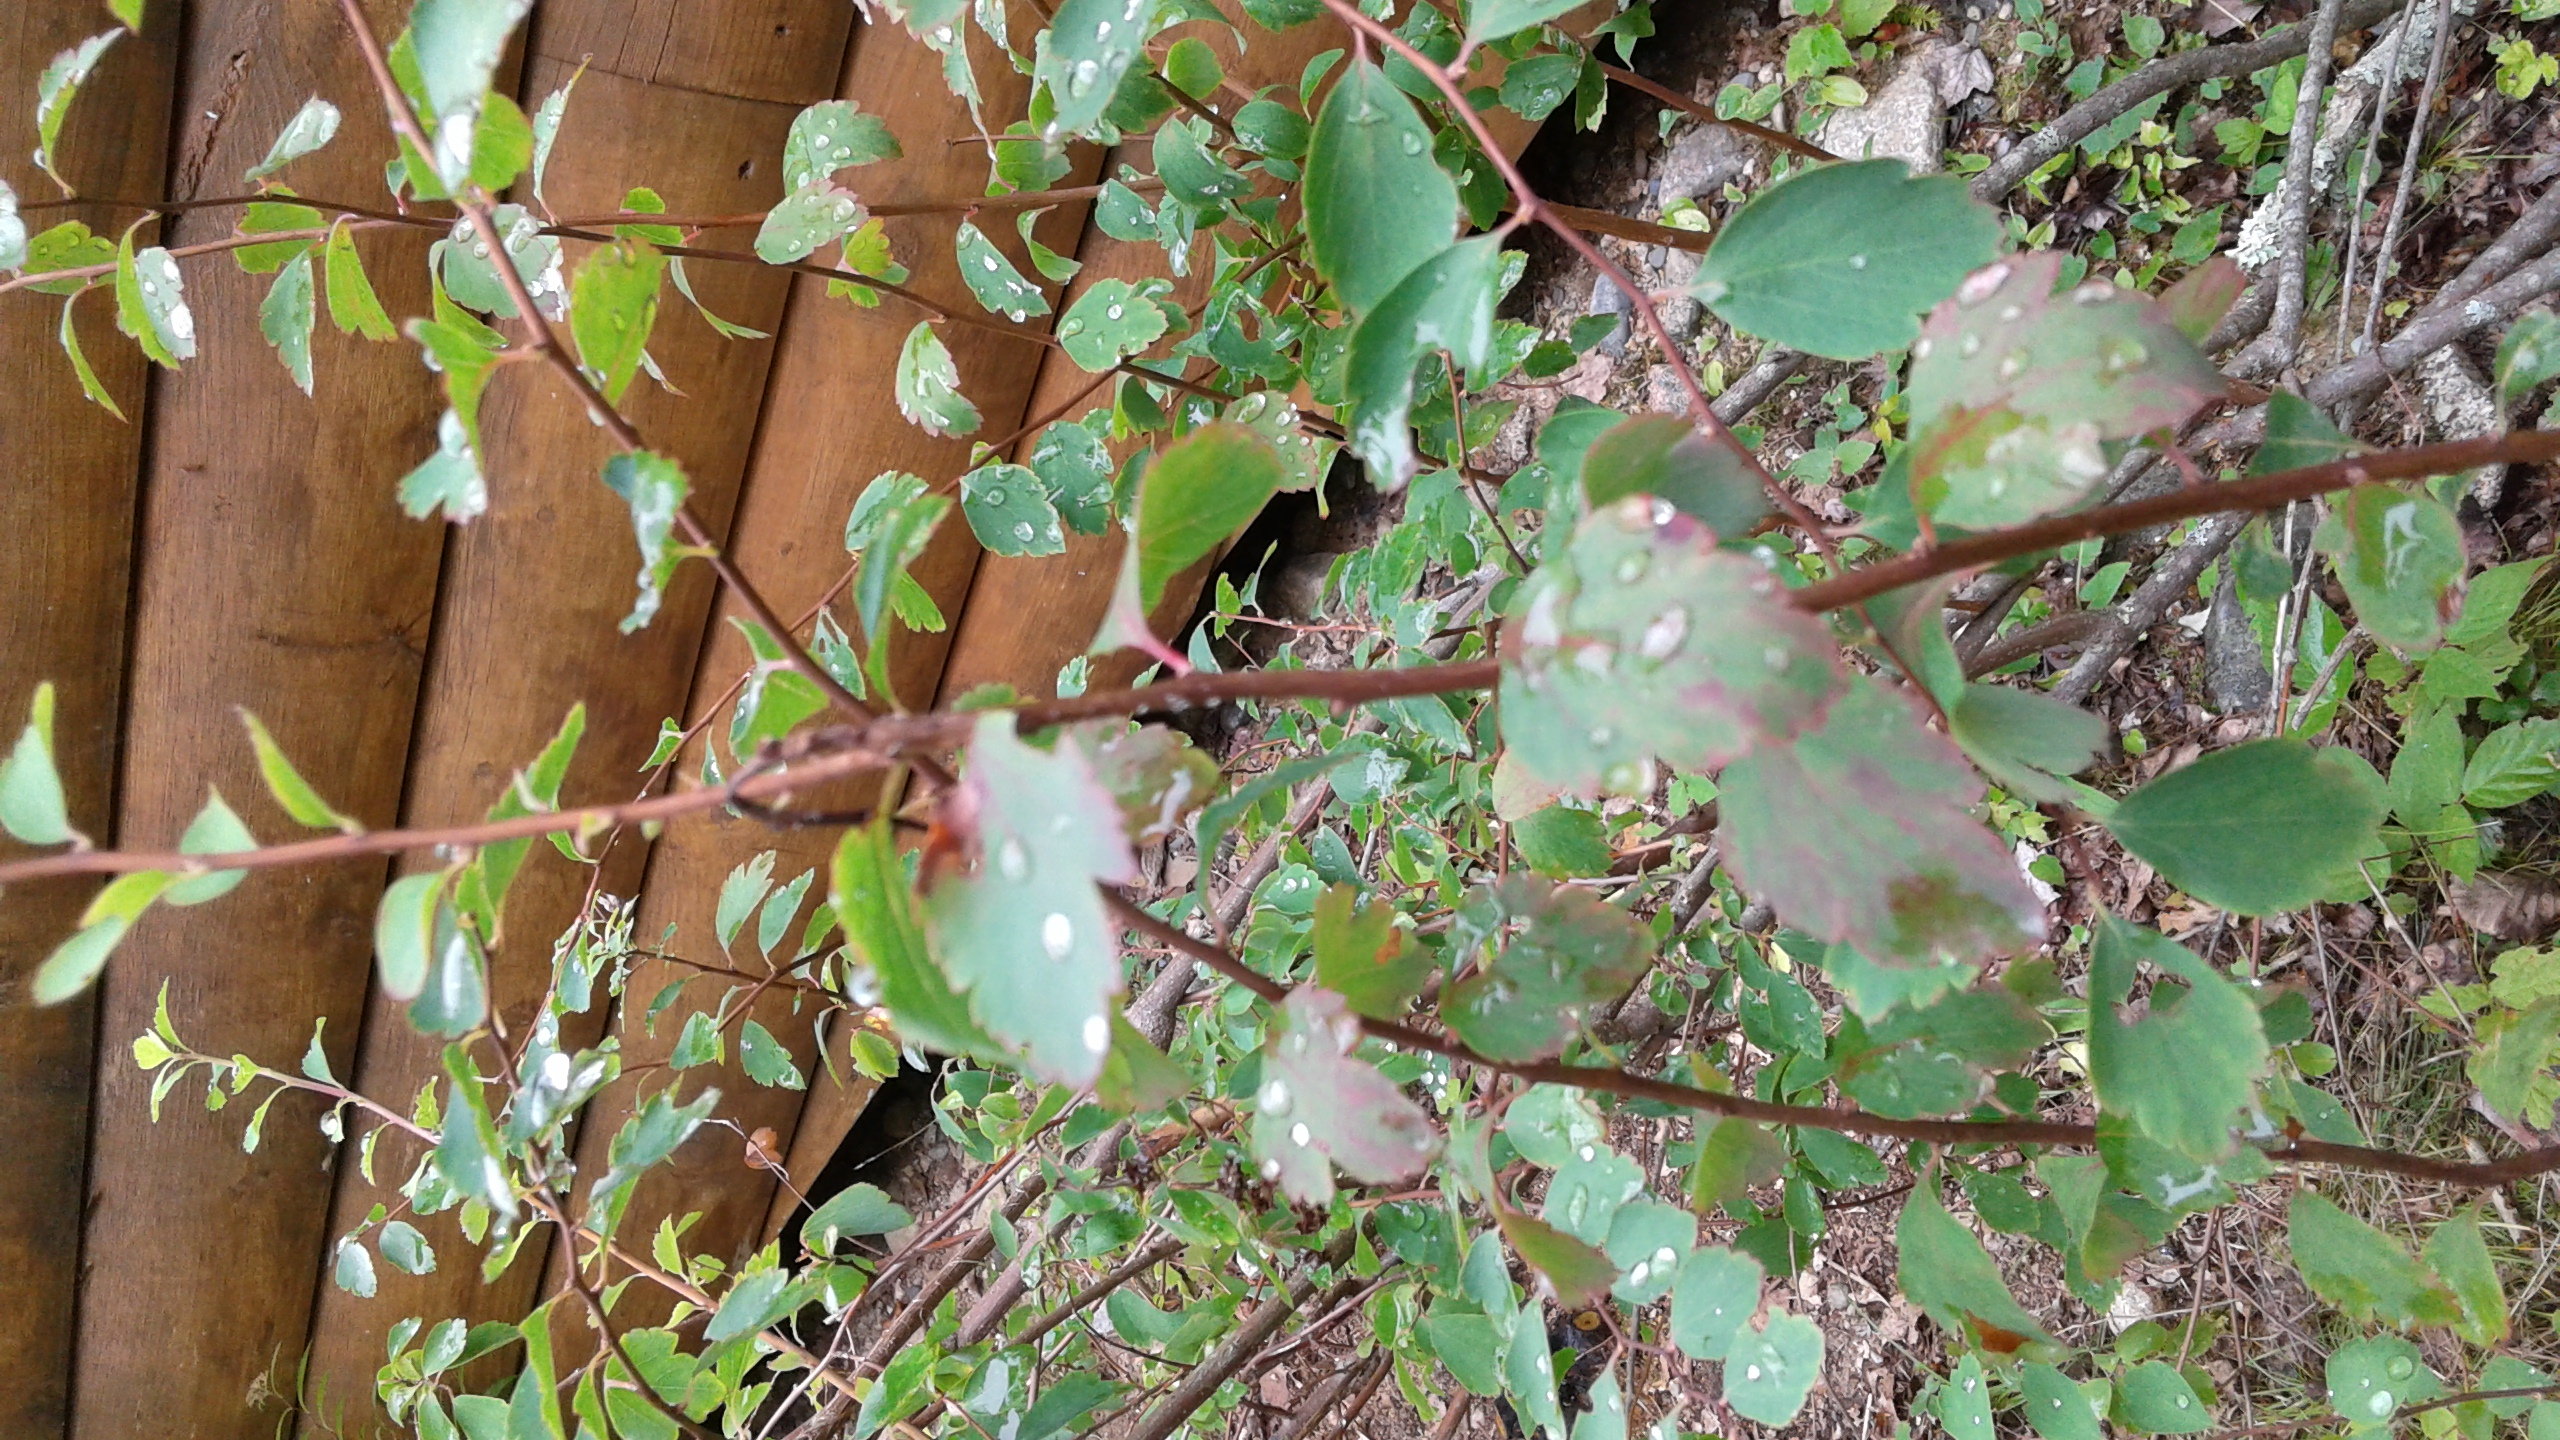 Help with shrub identification